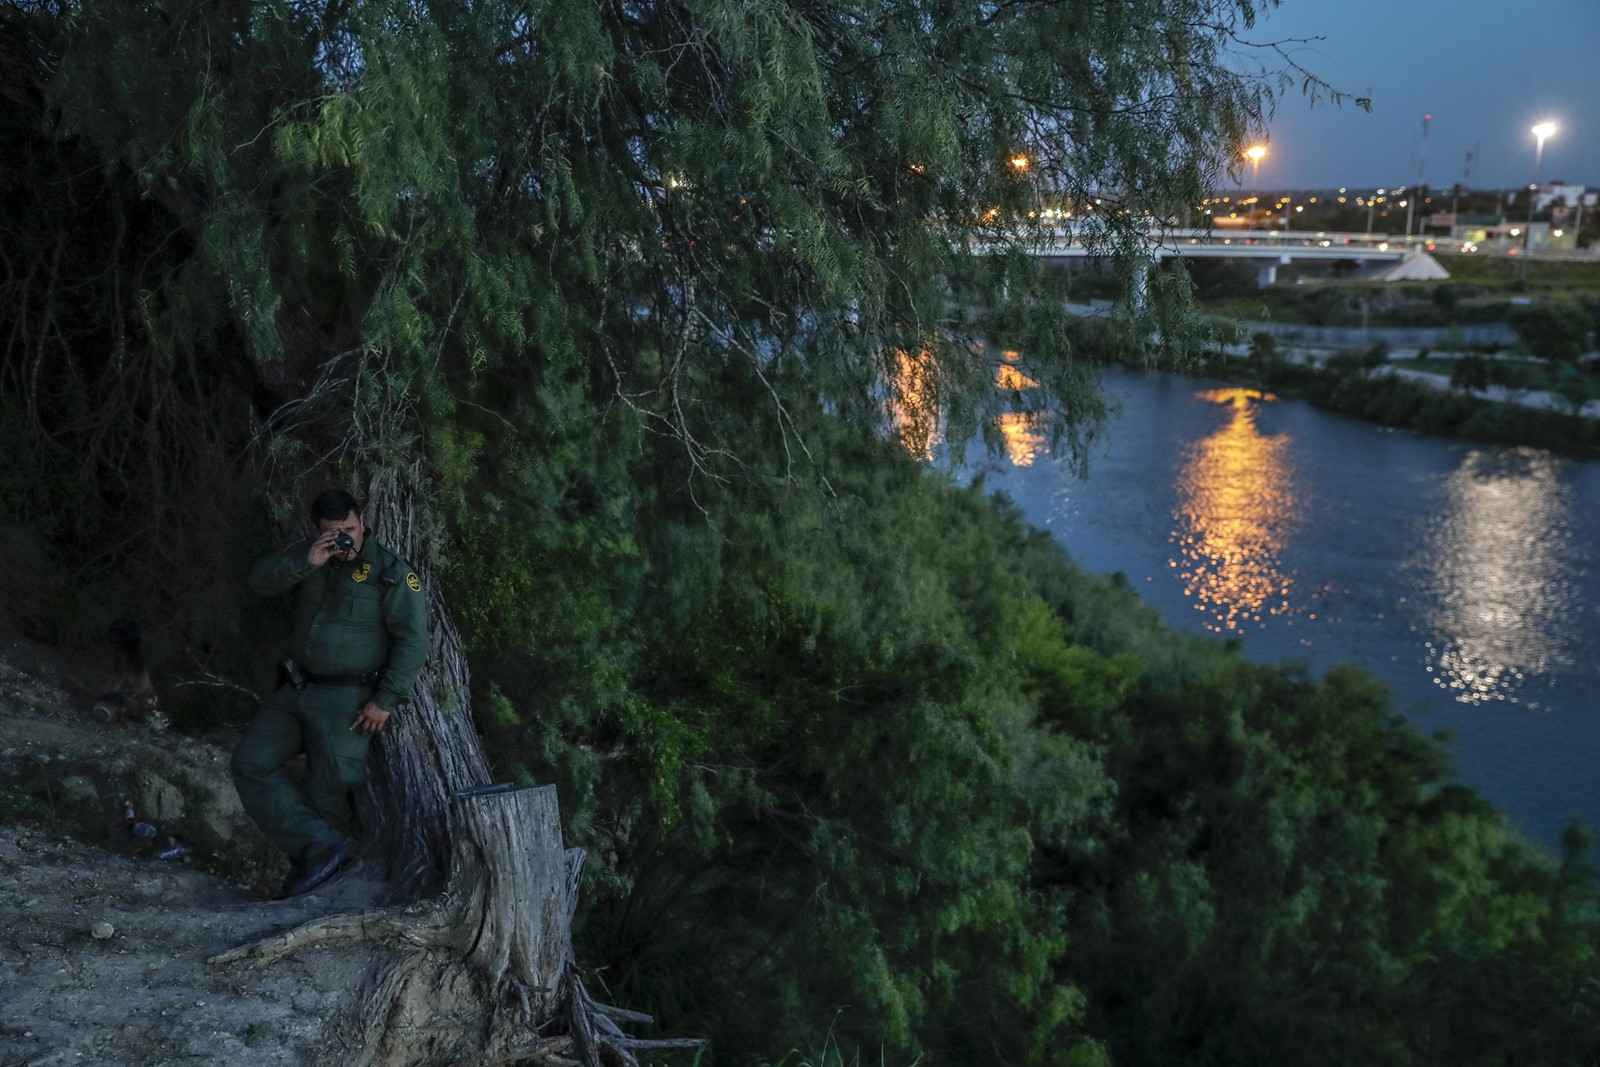 Border Patrol agent Joel Zavala looks across the Rio Grande in search of immigrants and smugglers trying to enter the United States from Mexico. Nestled among trees, he is hidden from the sight of lookouts posted hundreds of yards away across the river. — Photograph: Robert Gauthier/Los Angeles Times.